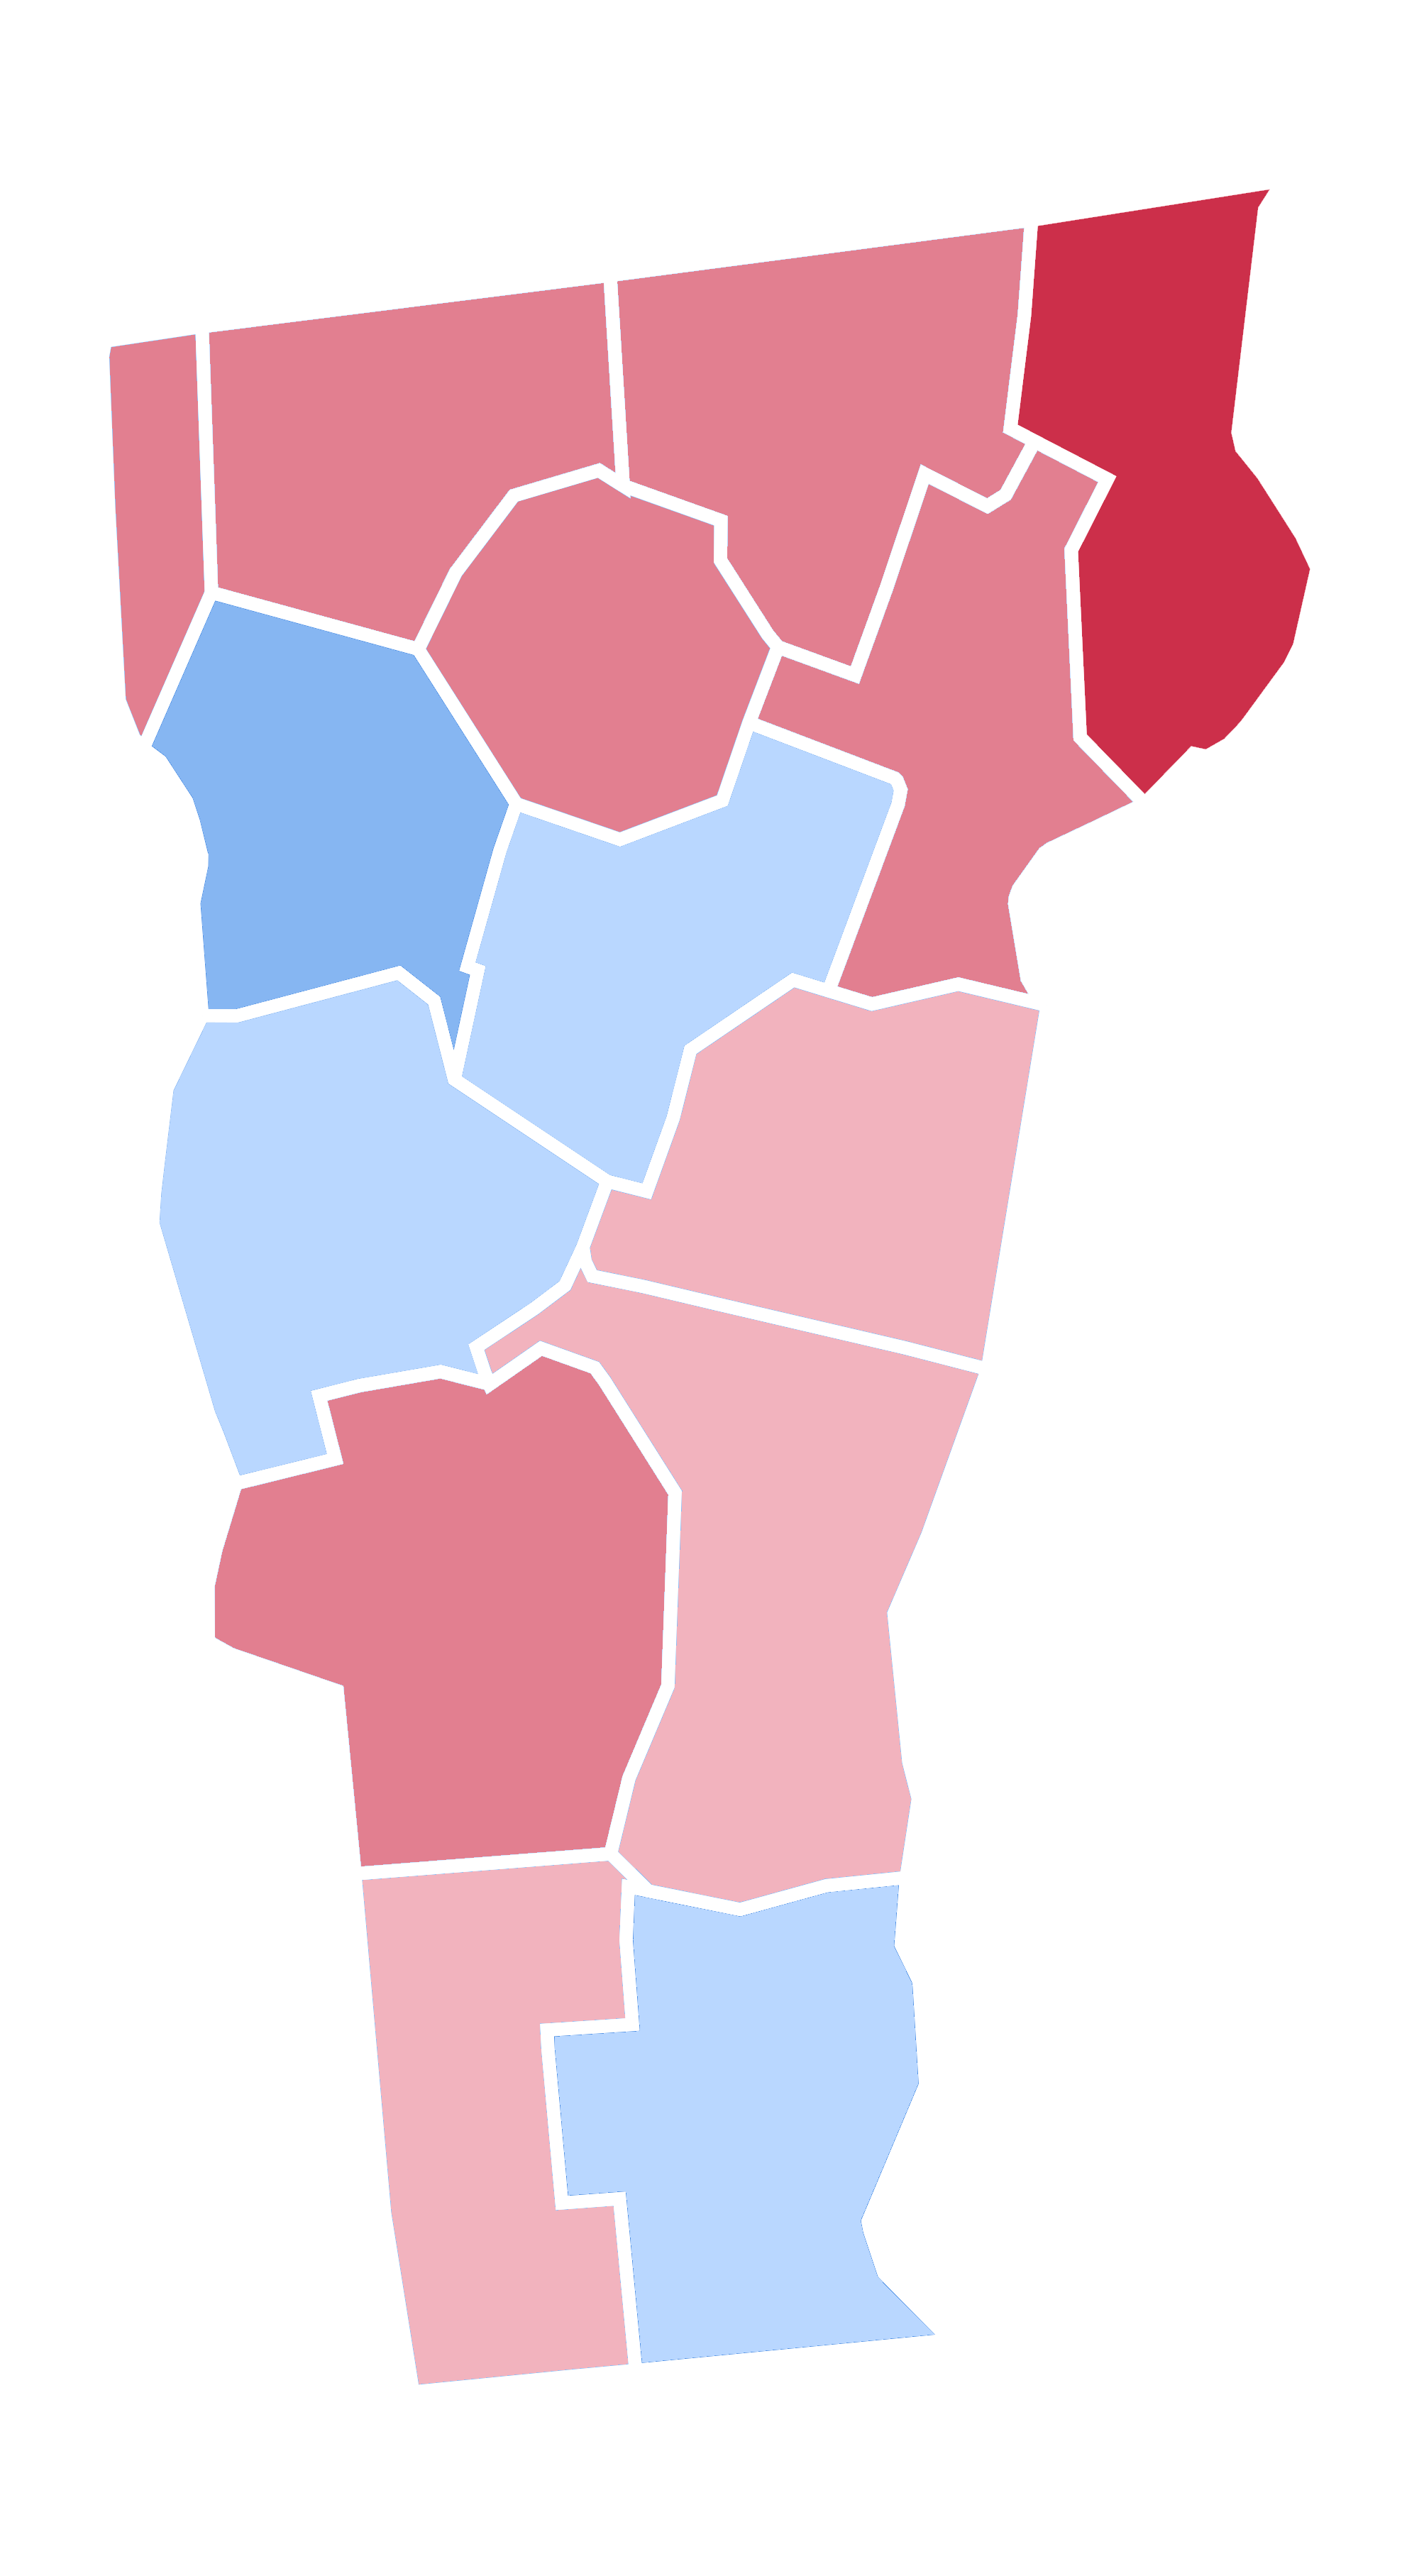 Vermont_Presidential_Election_Results_2016_Republican_Landslide_15.06%.png